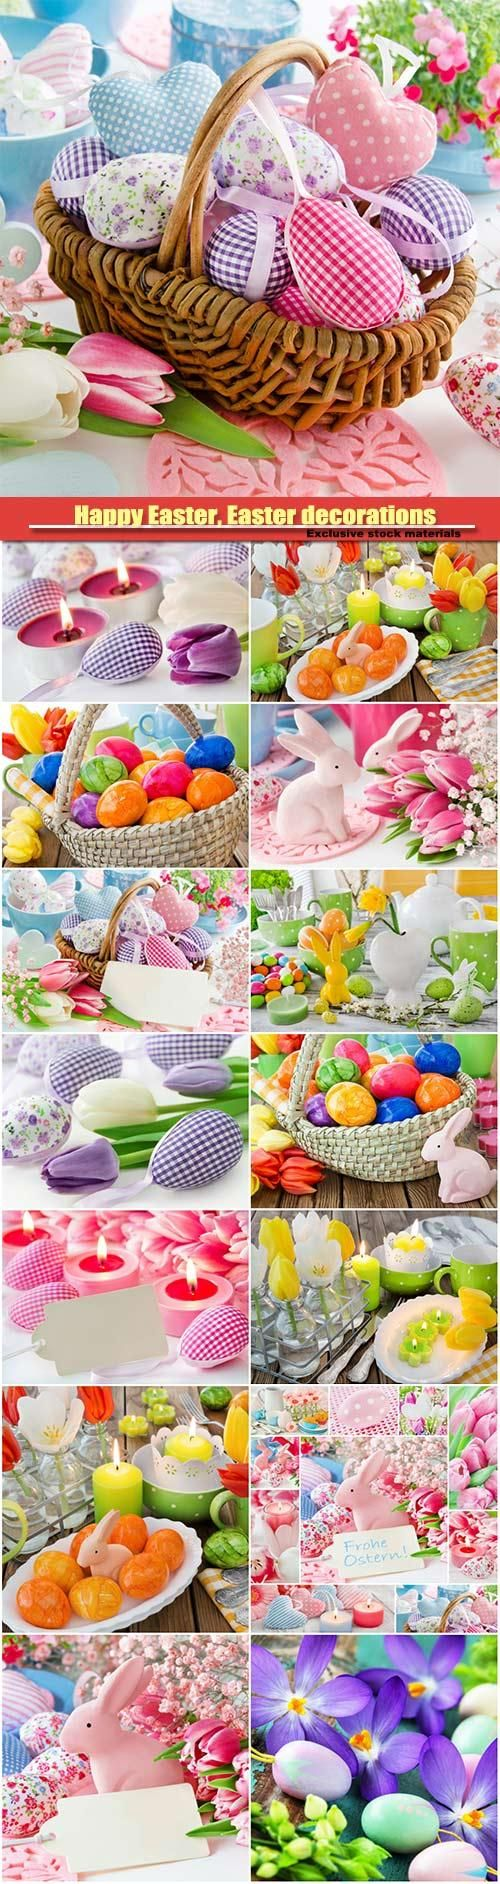 Happy Easter, Easter decorations, Easter eggs, Easter bunny